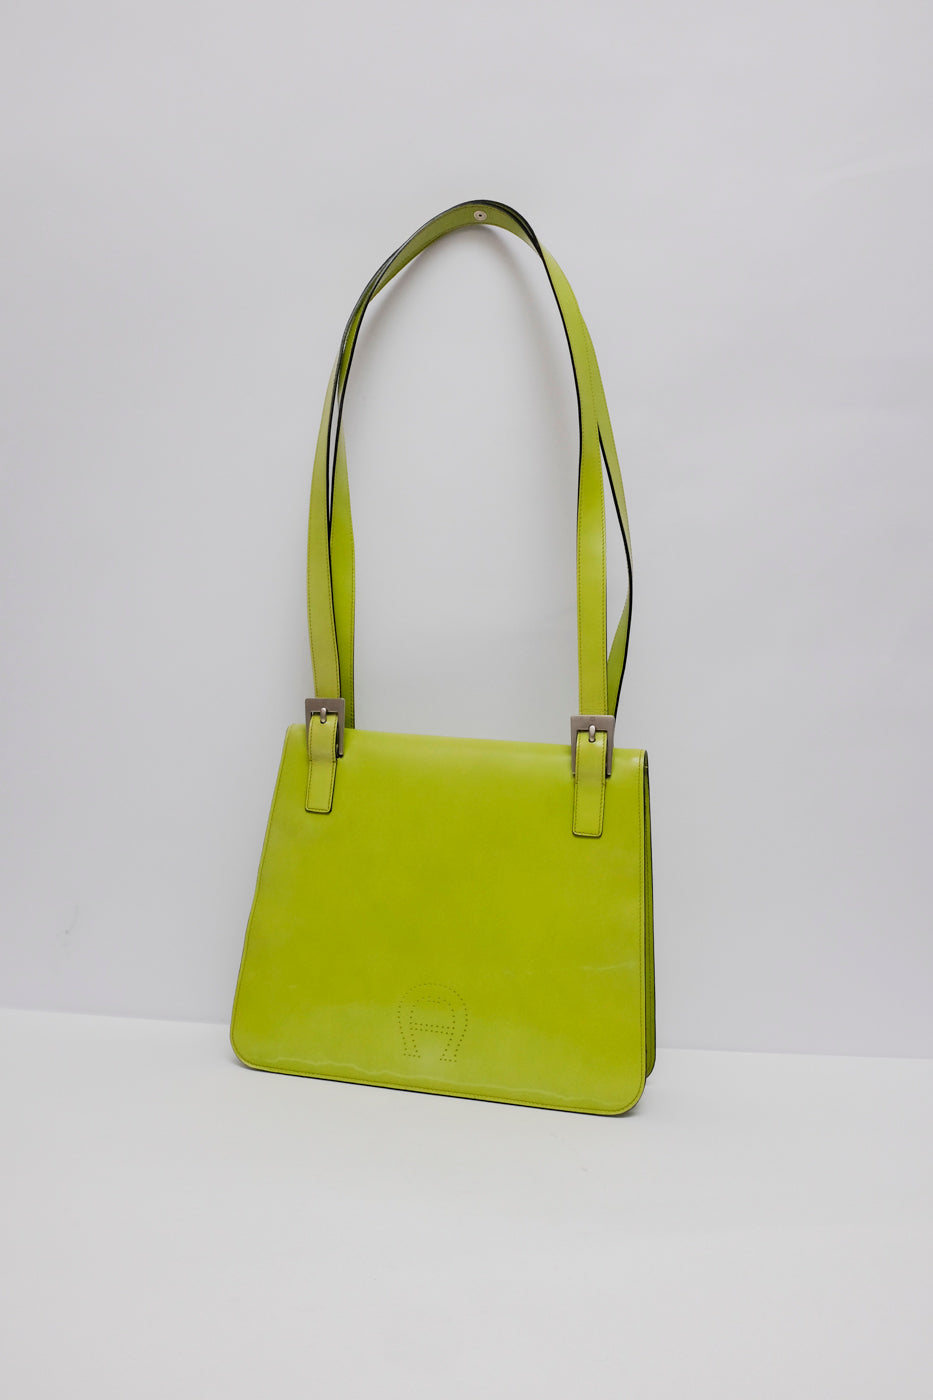 0003_AIGNER LIME GREEN LEATHER BAG